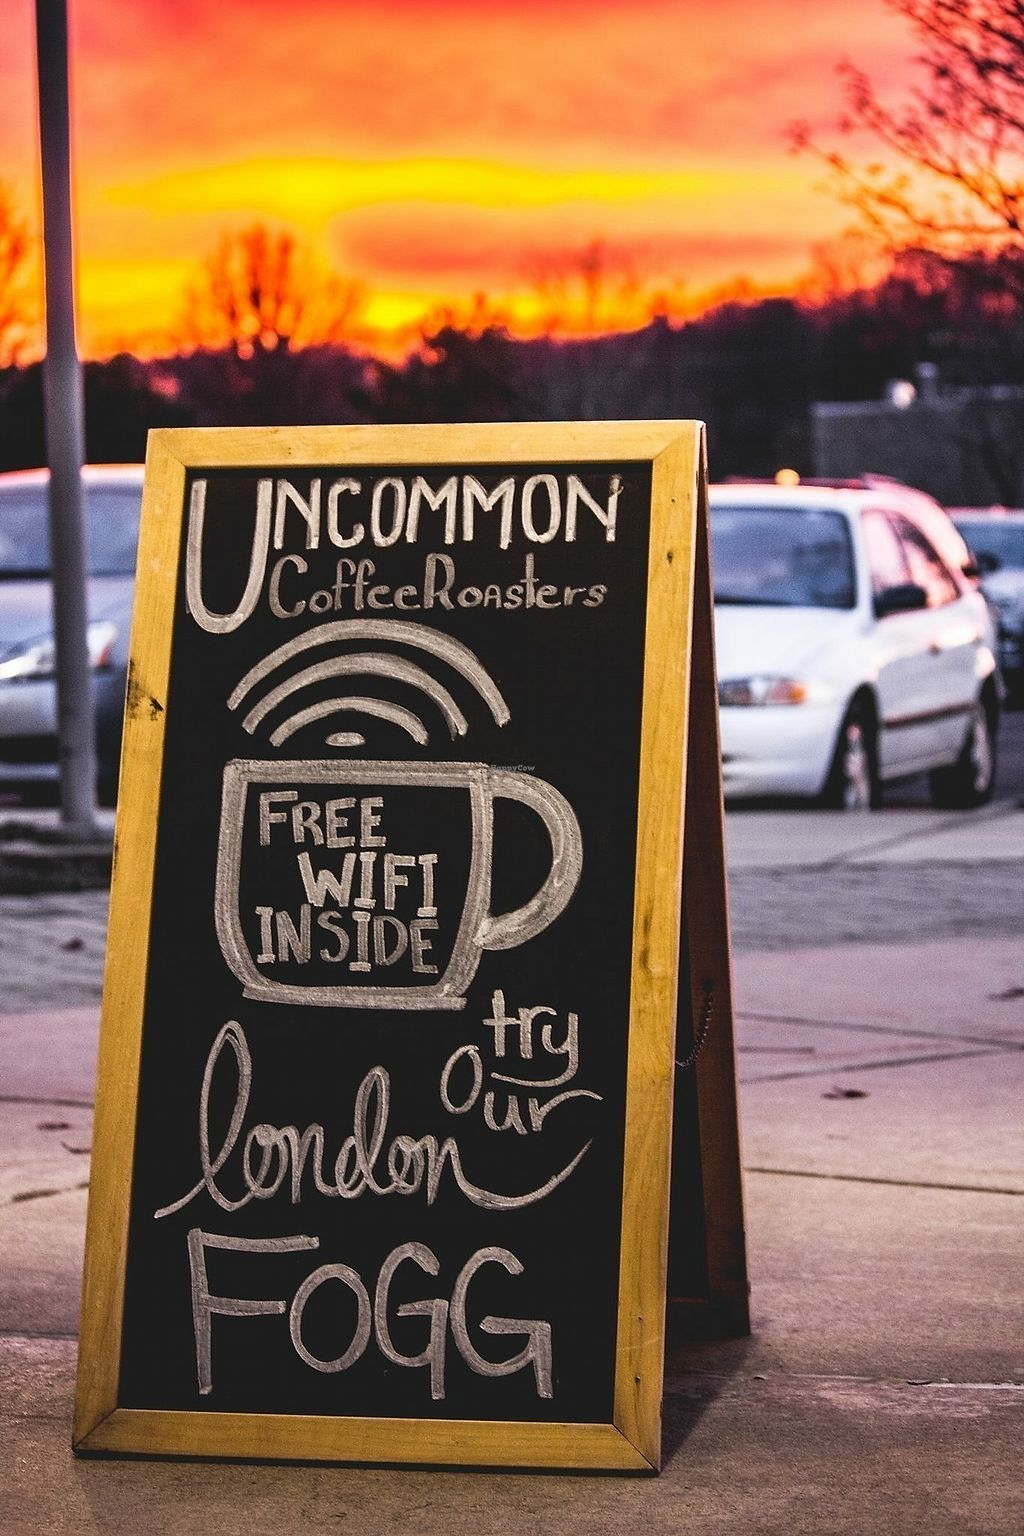 """Photo of Uncommon Grounds  by <a href=""""/members/profile/shellxvictoria"""">shellxvictoria</a> <br/>Free Wifi <br/> February 14, 2018  - <a href='/contact/abuse/image/109085/359456'>Report</a>"""